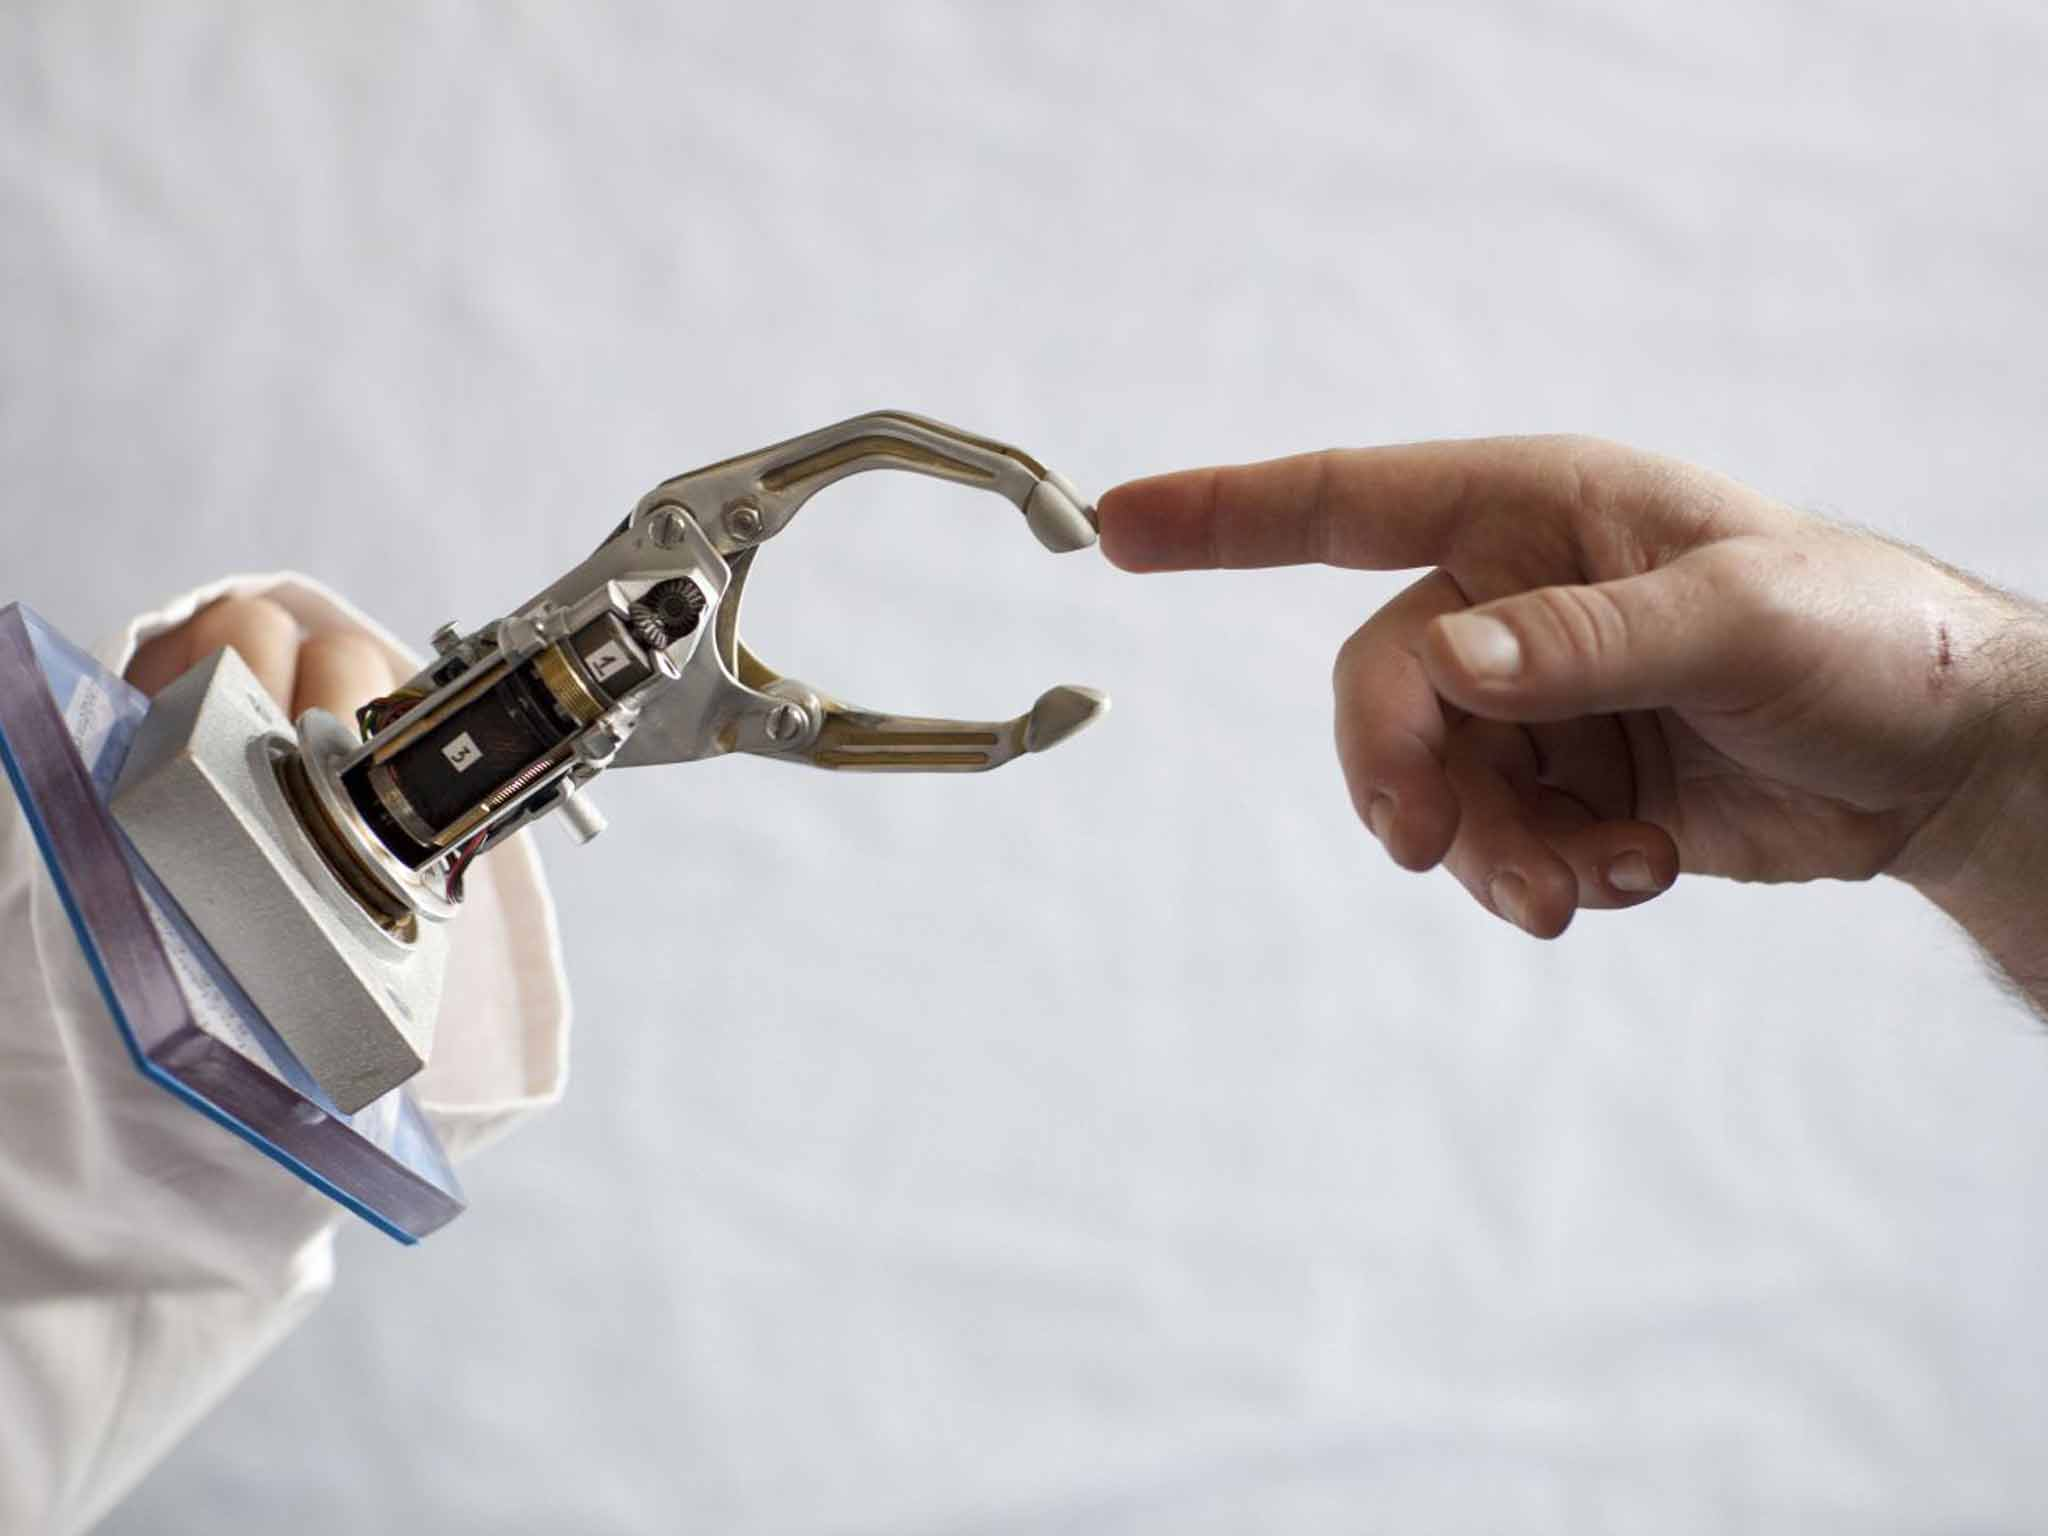 prosthetic hand technologies In this instructable i'll show you how to make tact, a low-cost, open-source prosthetic hand tact exceeds other open-source prosthetic hand models in several ways.